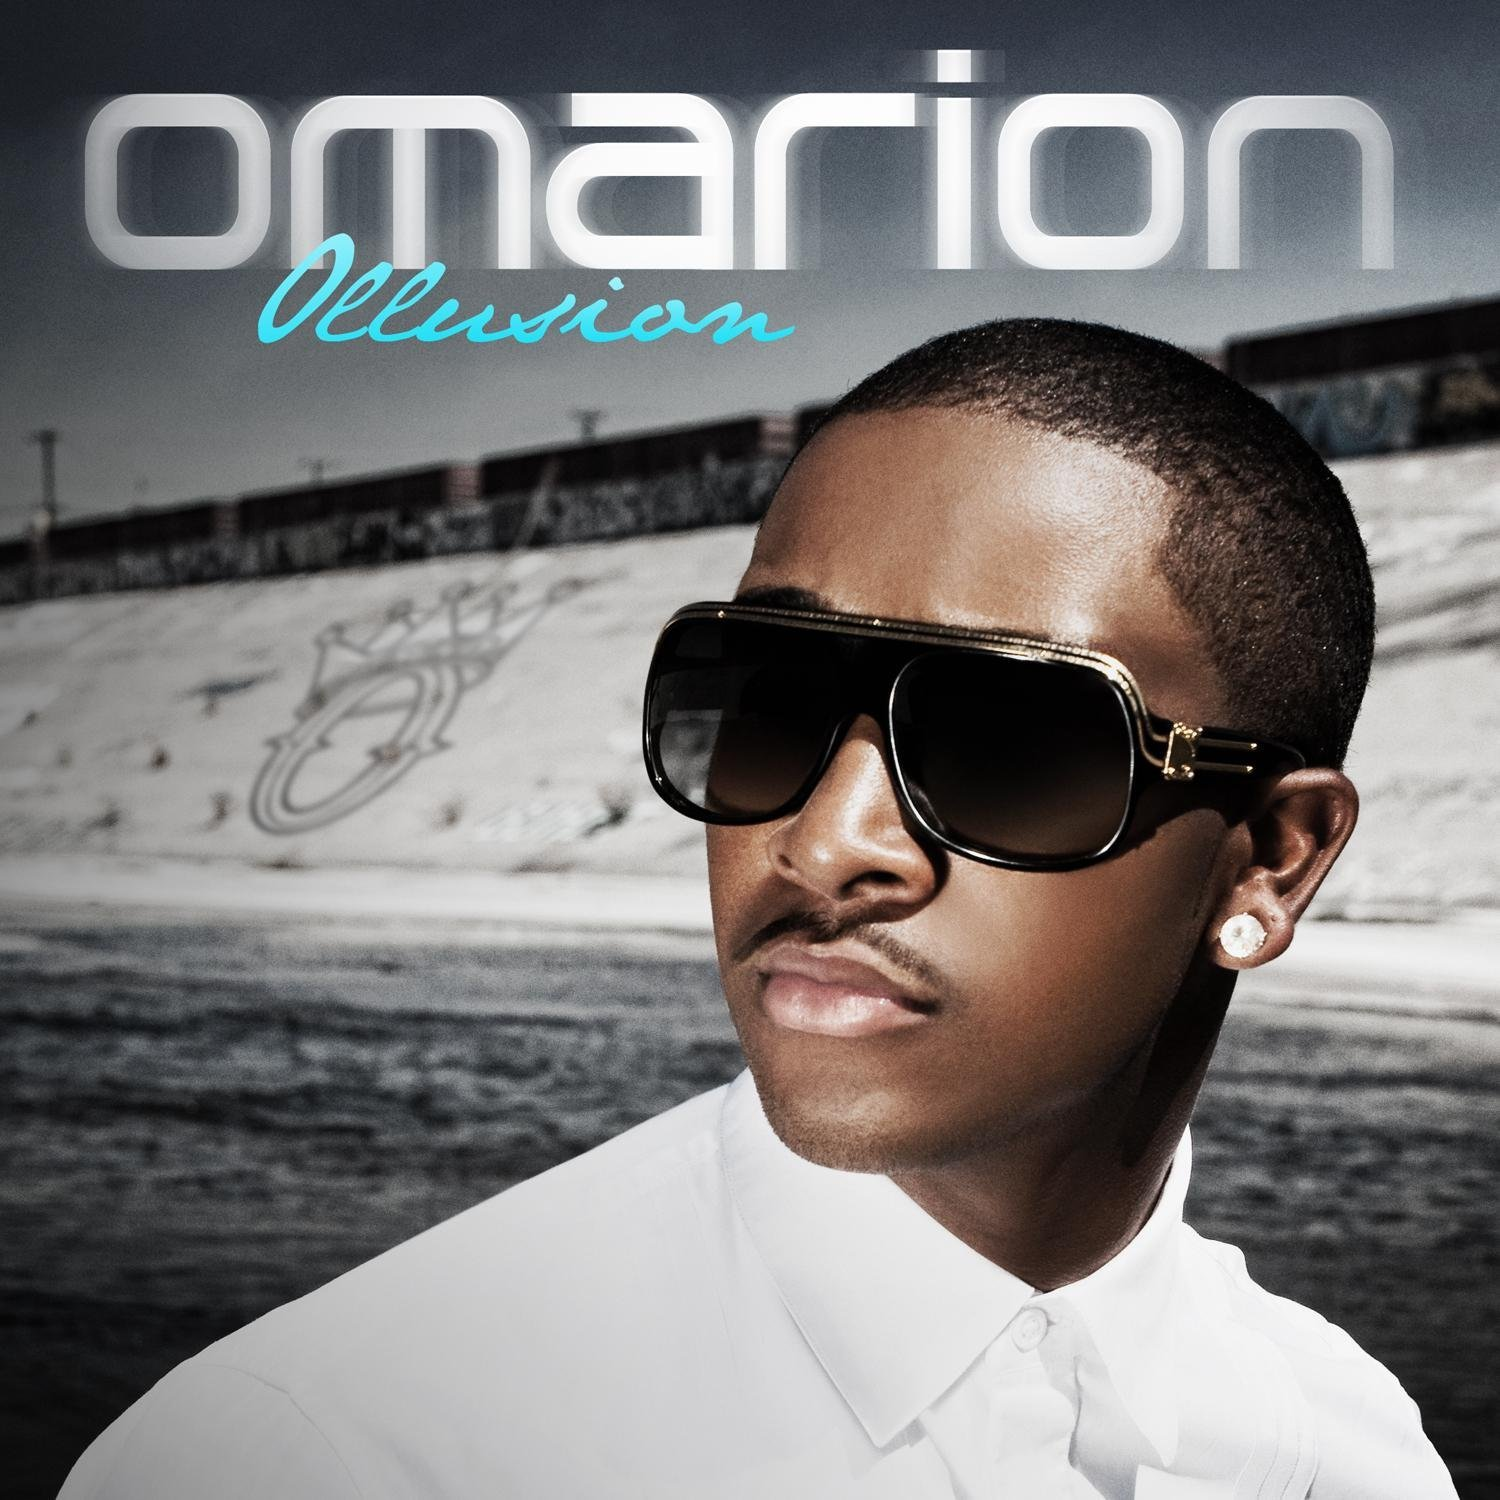 Omarion Ollusion Album Cover